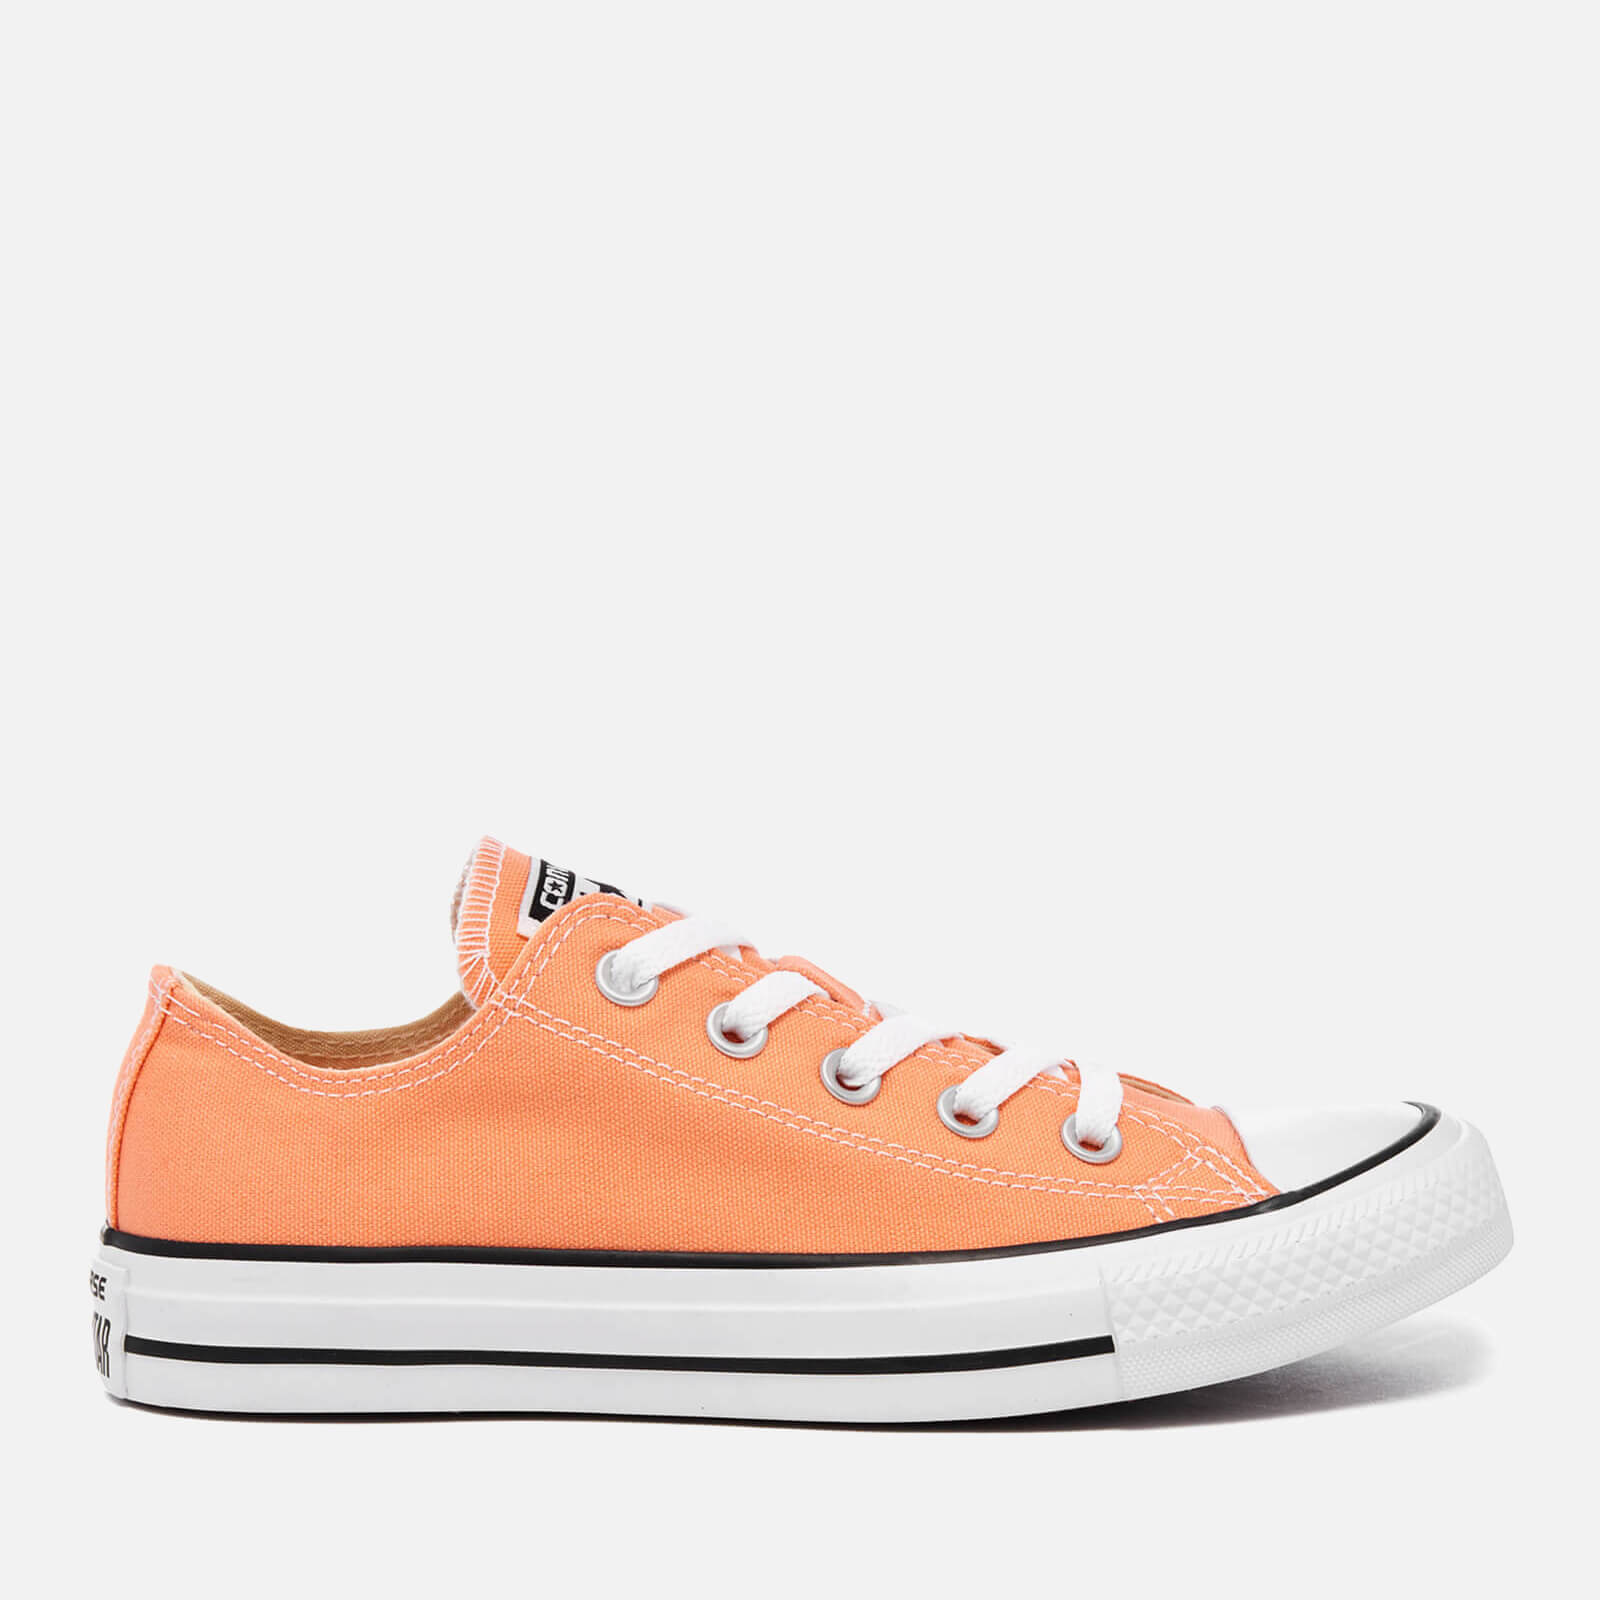 20430ef2ce6d4f Converse Women s Chuck Taylor All Star Ox Trainers - Sunset Glow ...